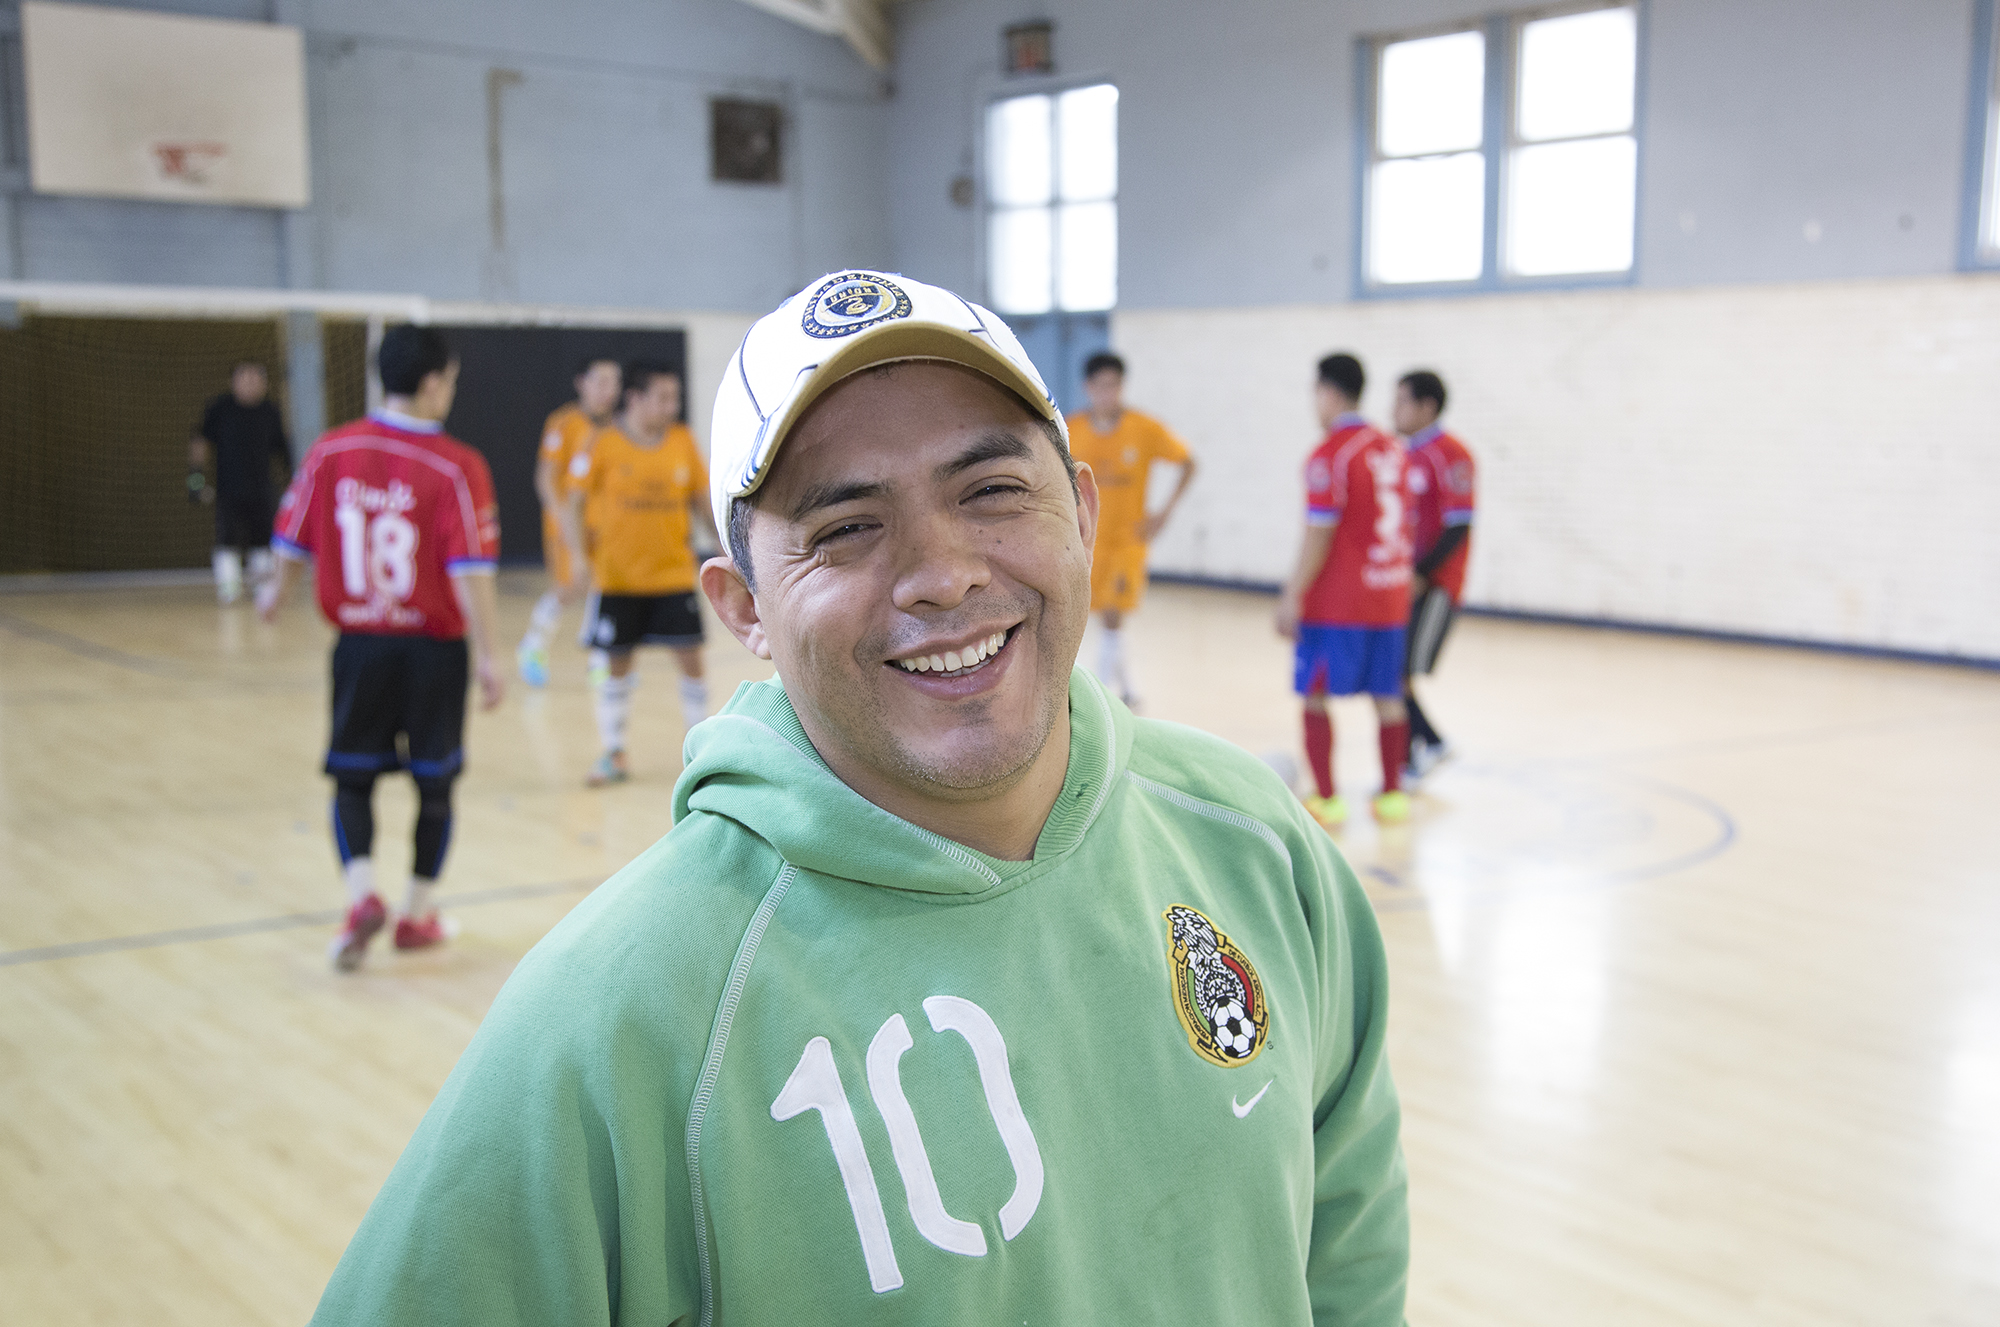 Emilio Alcaide, Director of the PhillyMex soccer league.